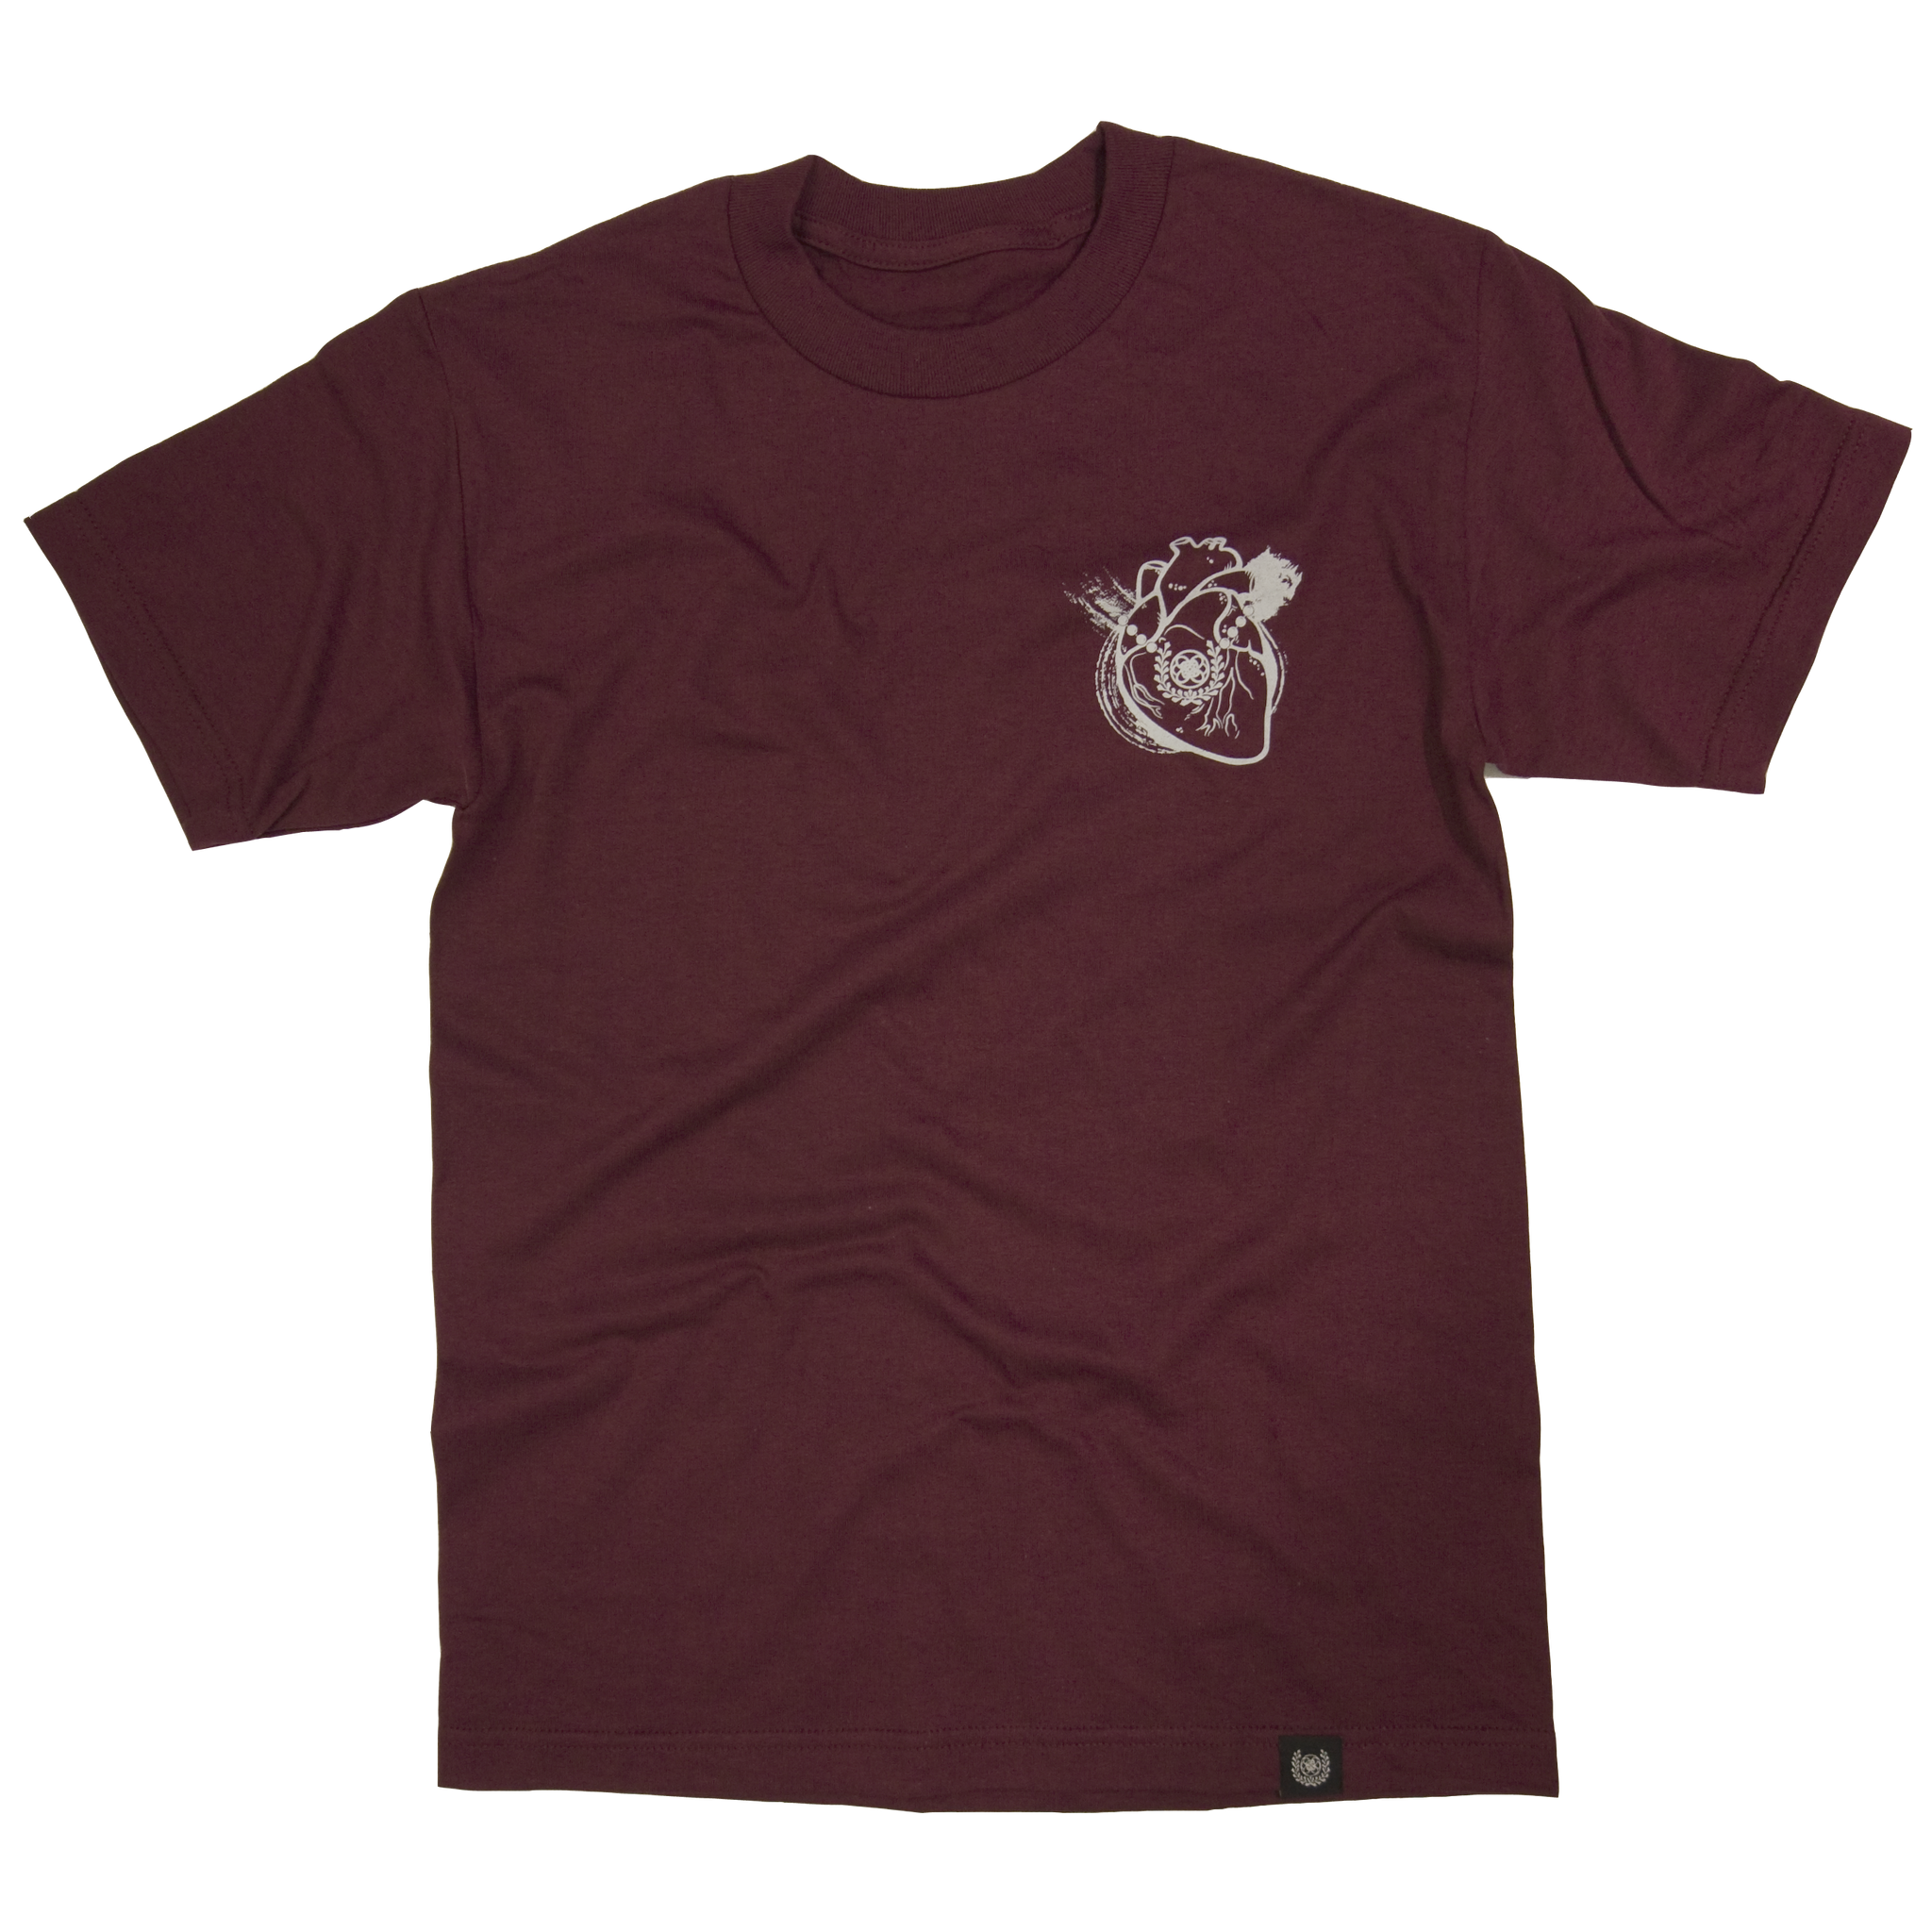 HEART OF A SAMURAI TEE- DARK BLOOD